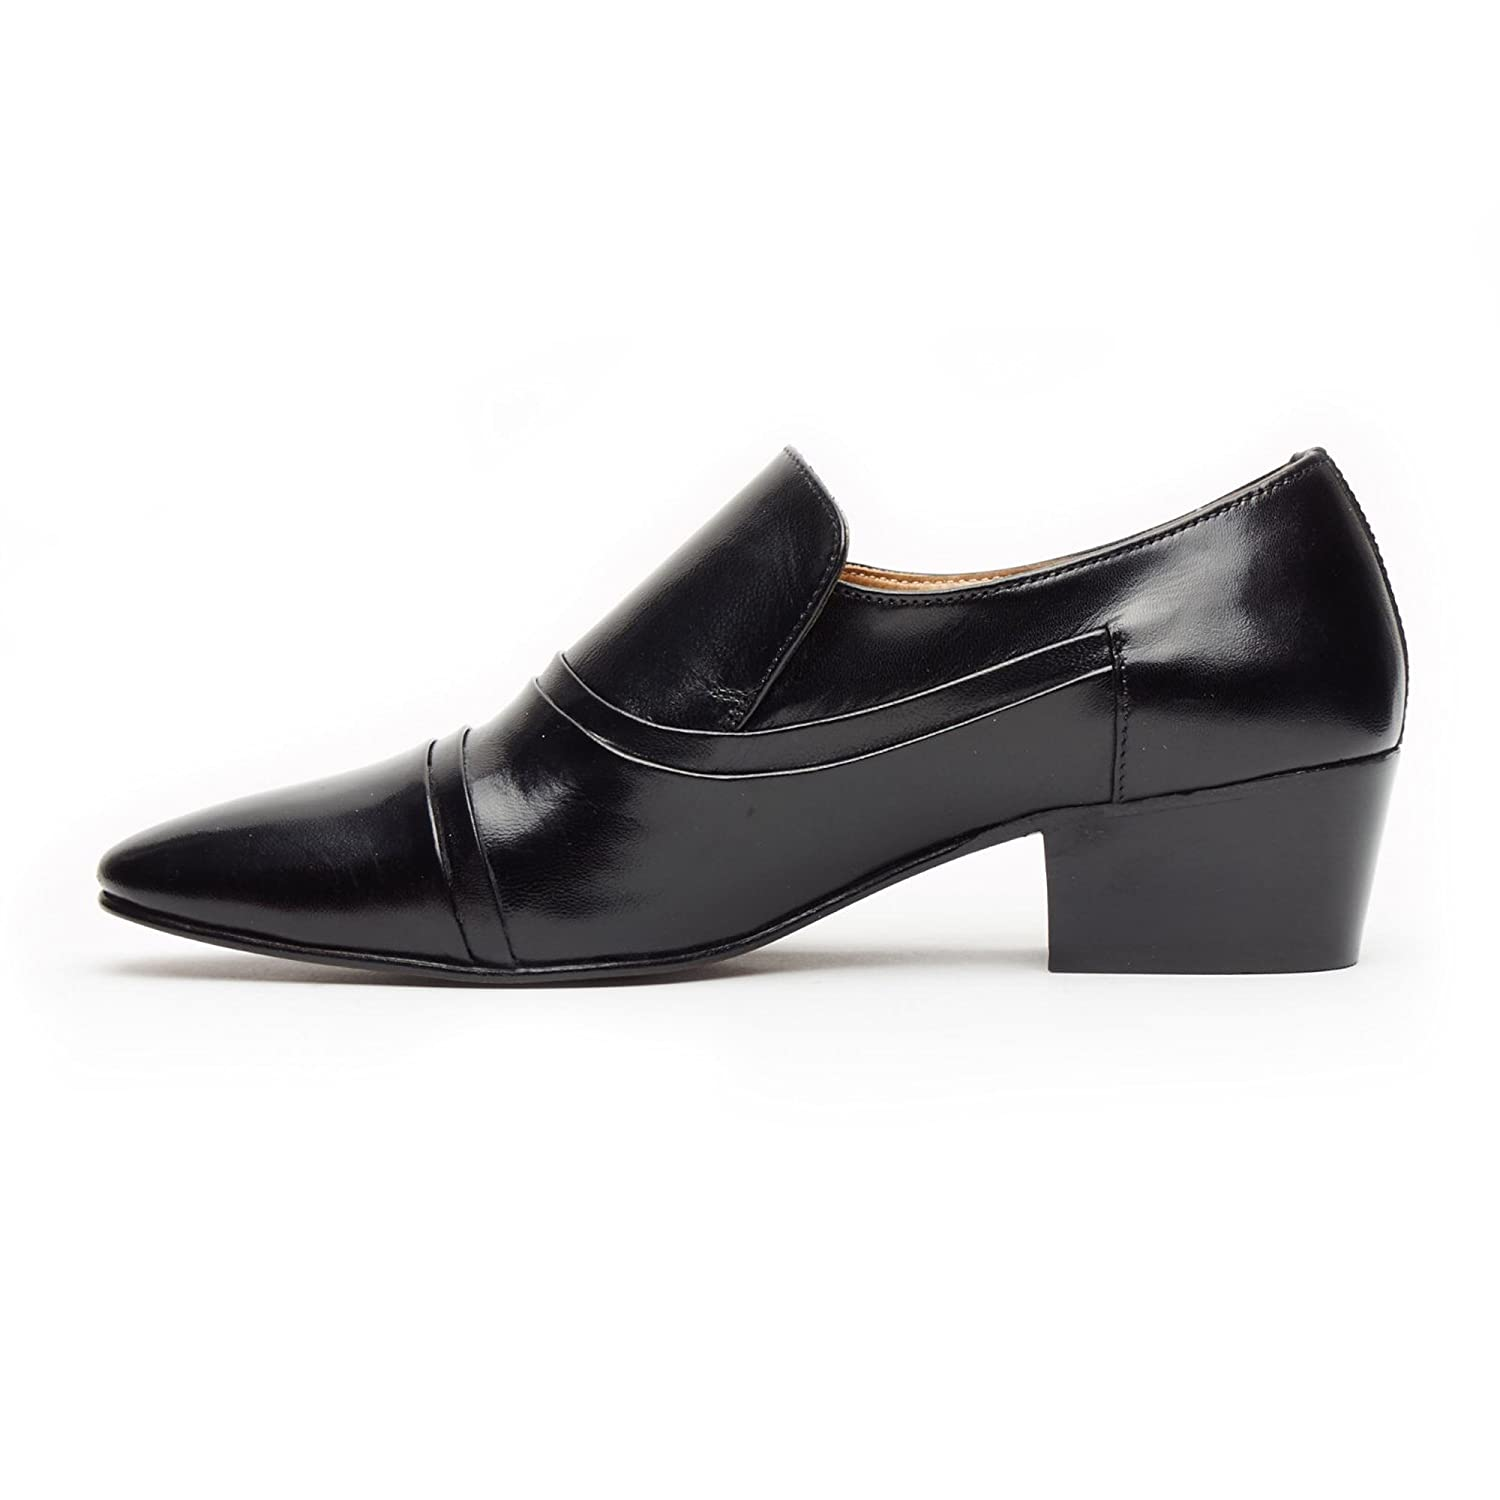 Mens Gents Smart Cuban Heel Evening Wedding Party Office Work Formal Leather Slip On Shoes Size